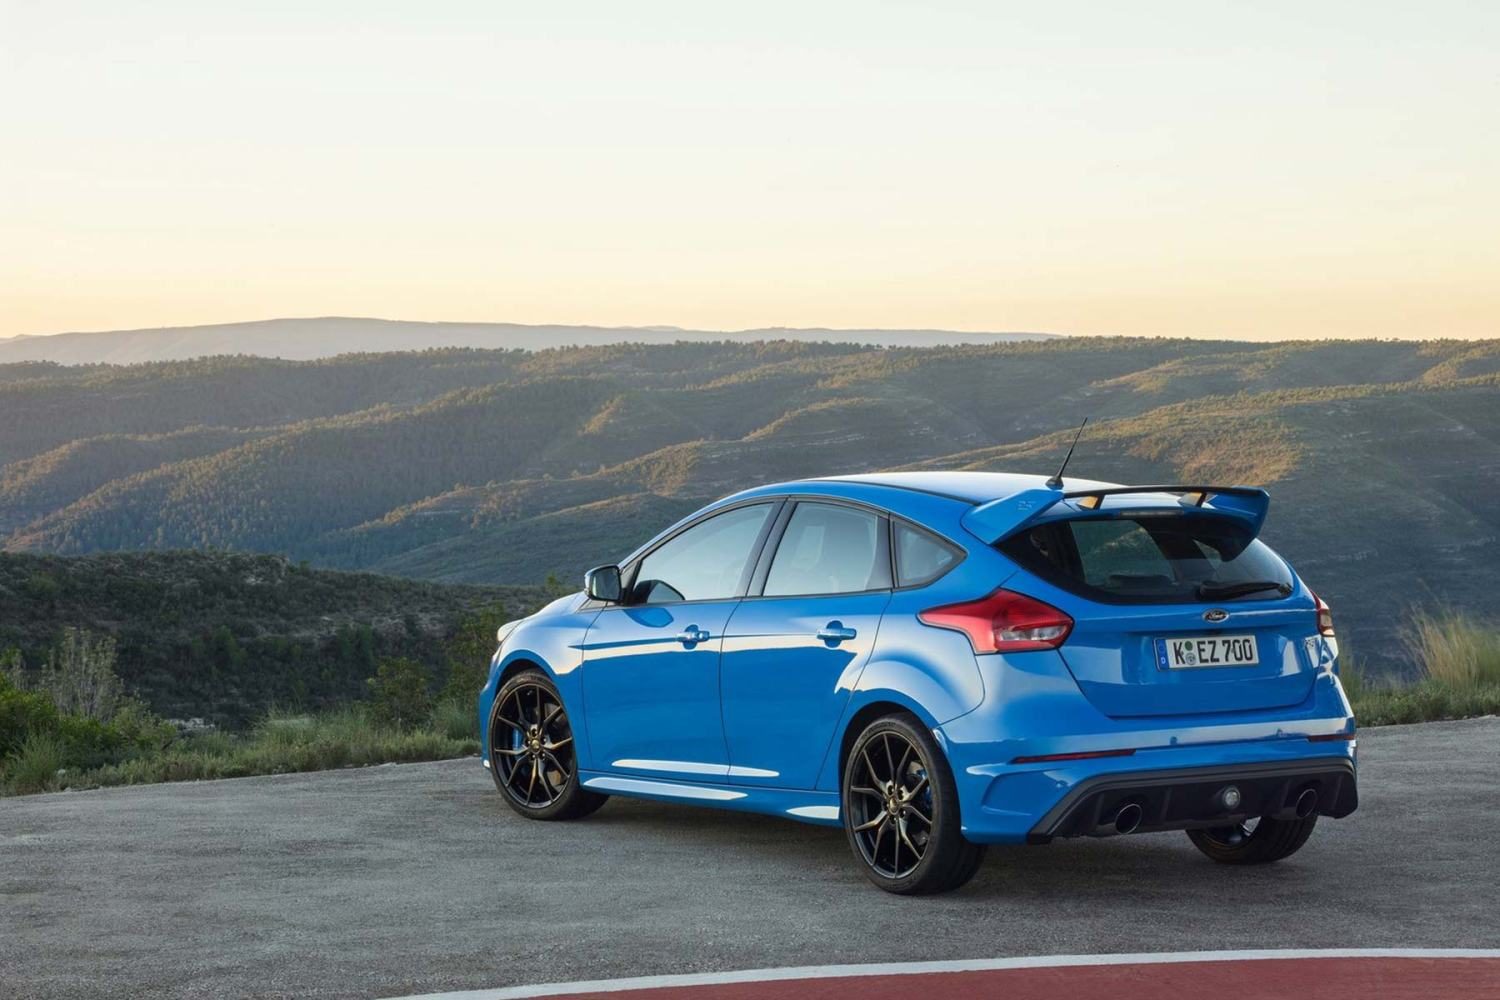 Outrospective Ford Focus RS